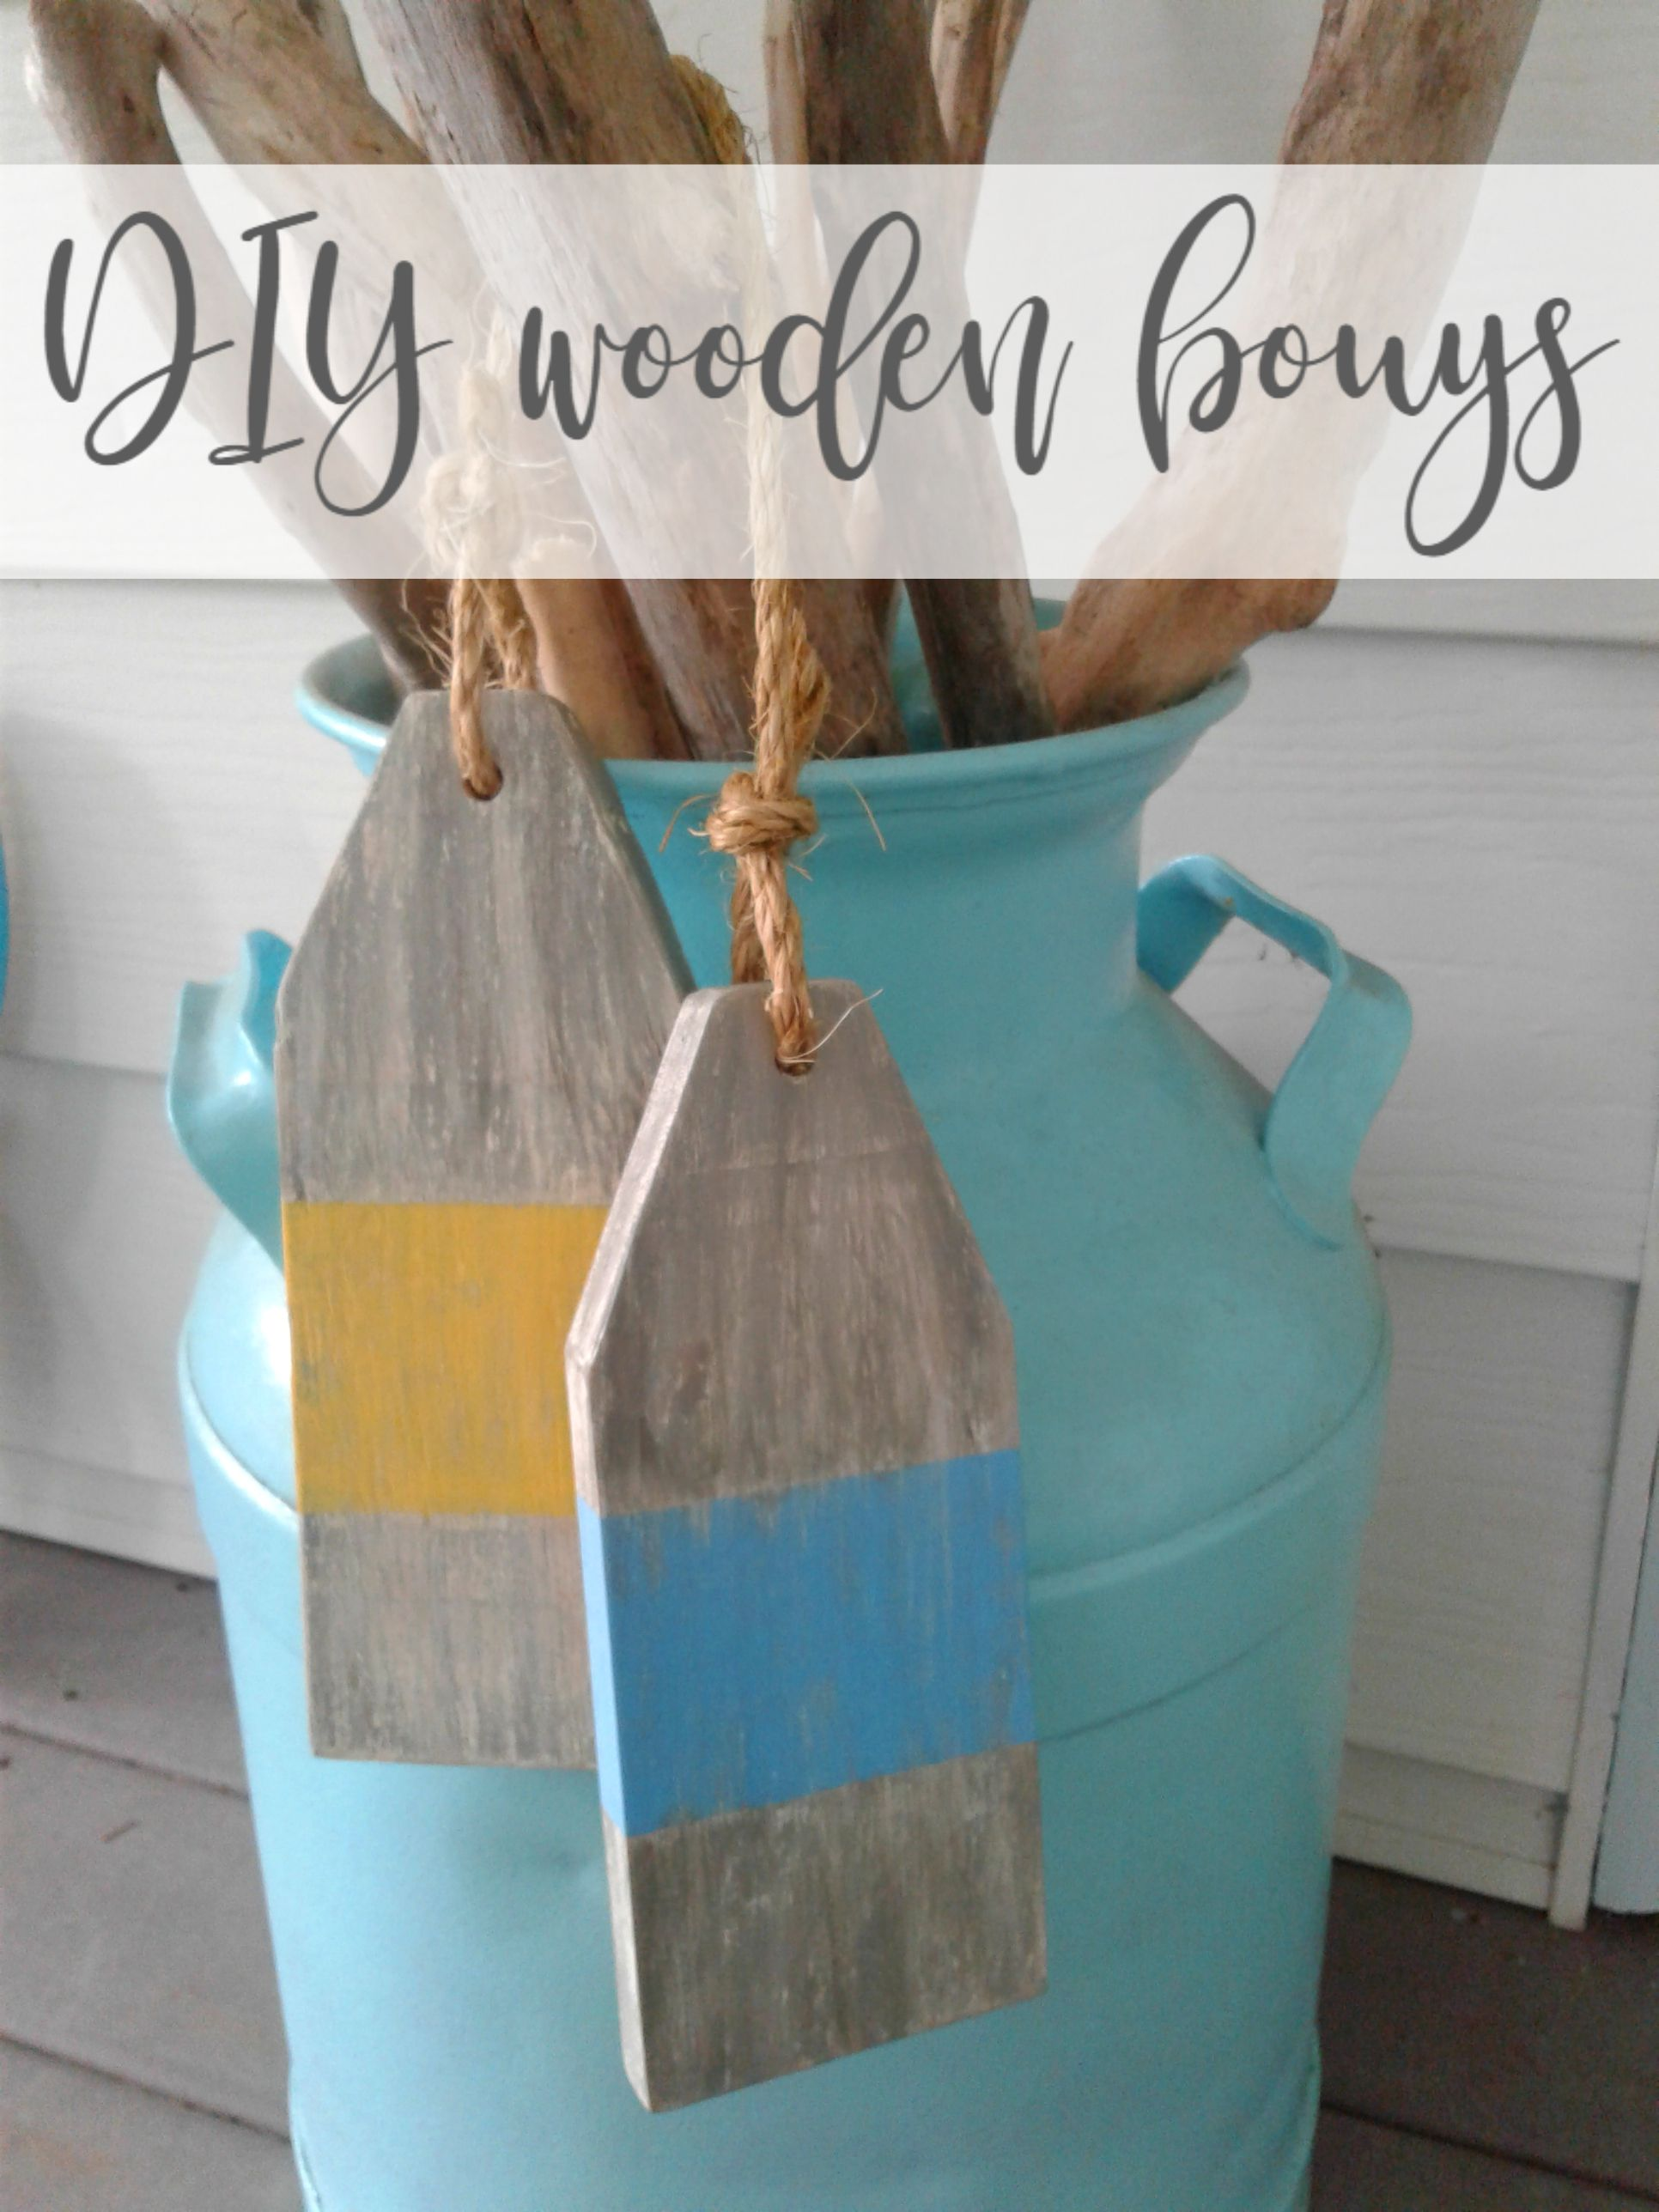 Add Some Fun Beach Decor To Your Home With These Easy Diy Wooden